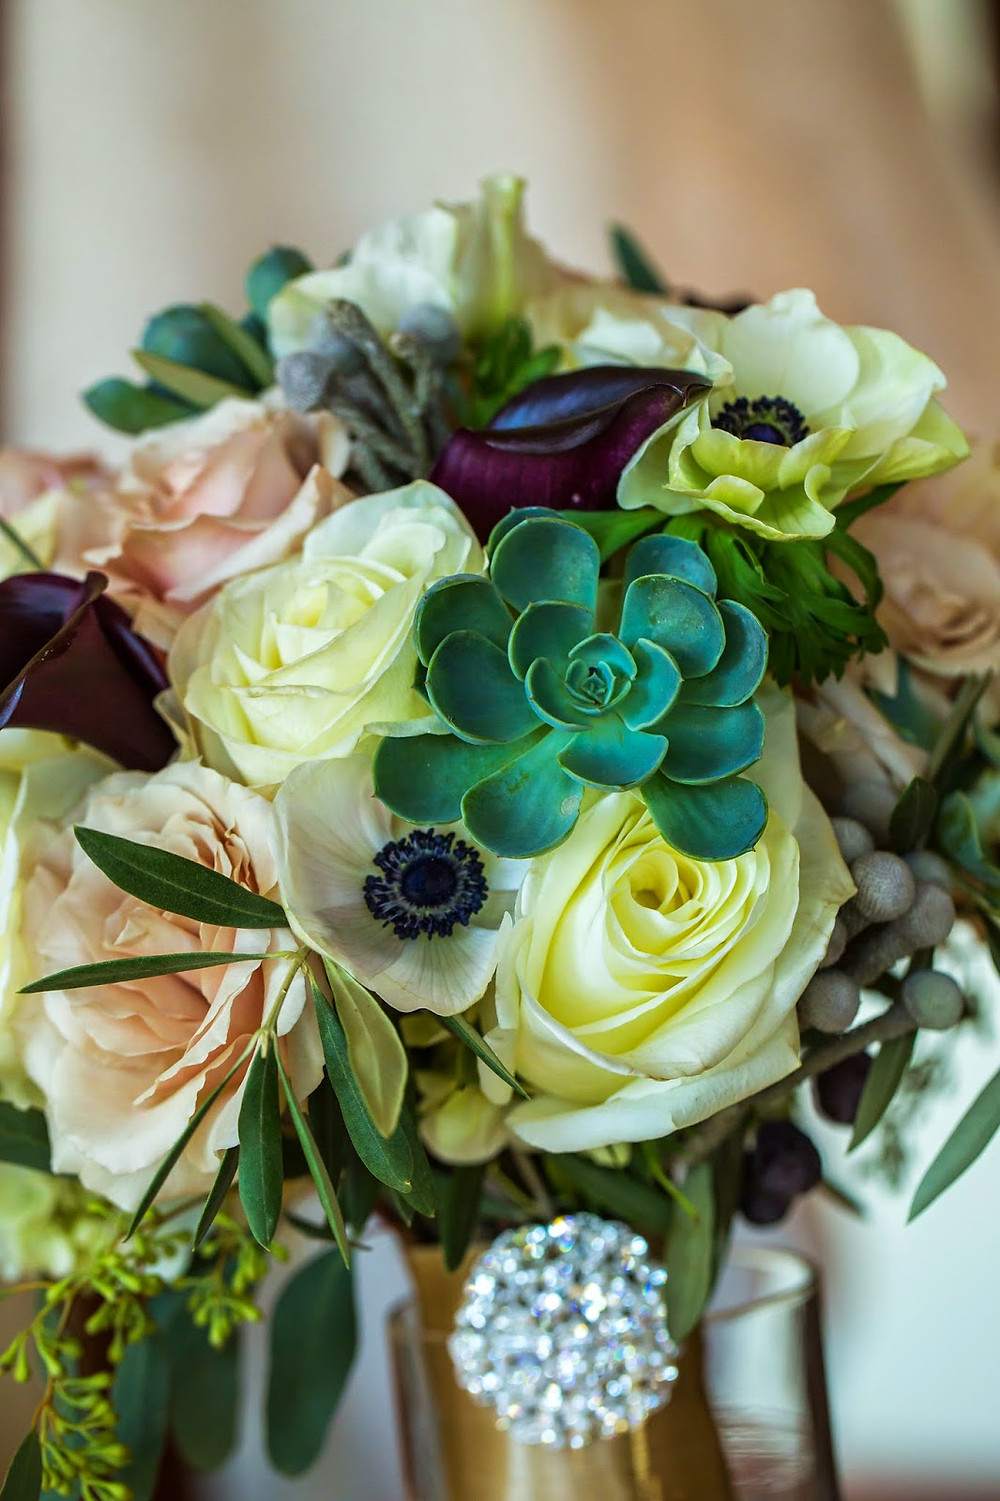 Wedding Flowers by Visual Impact Design. CinZo Photography